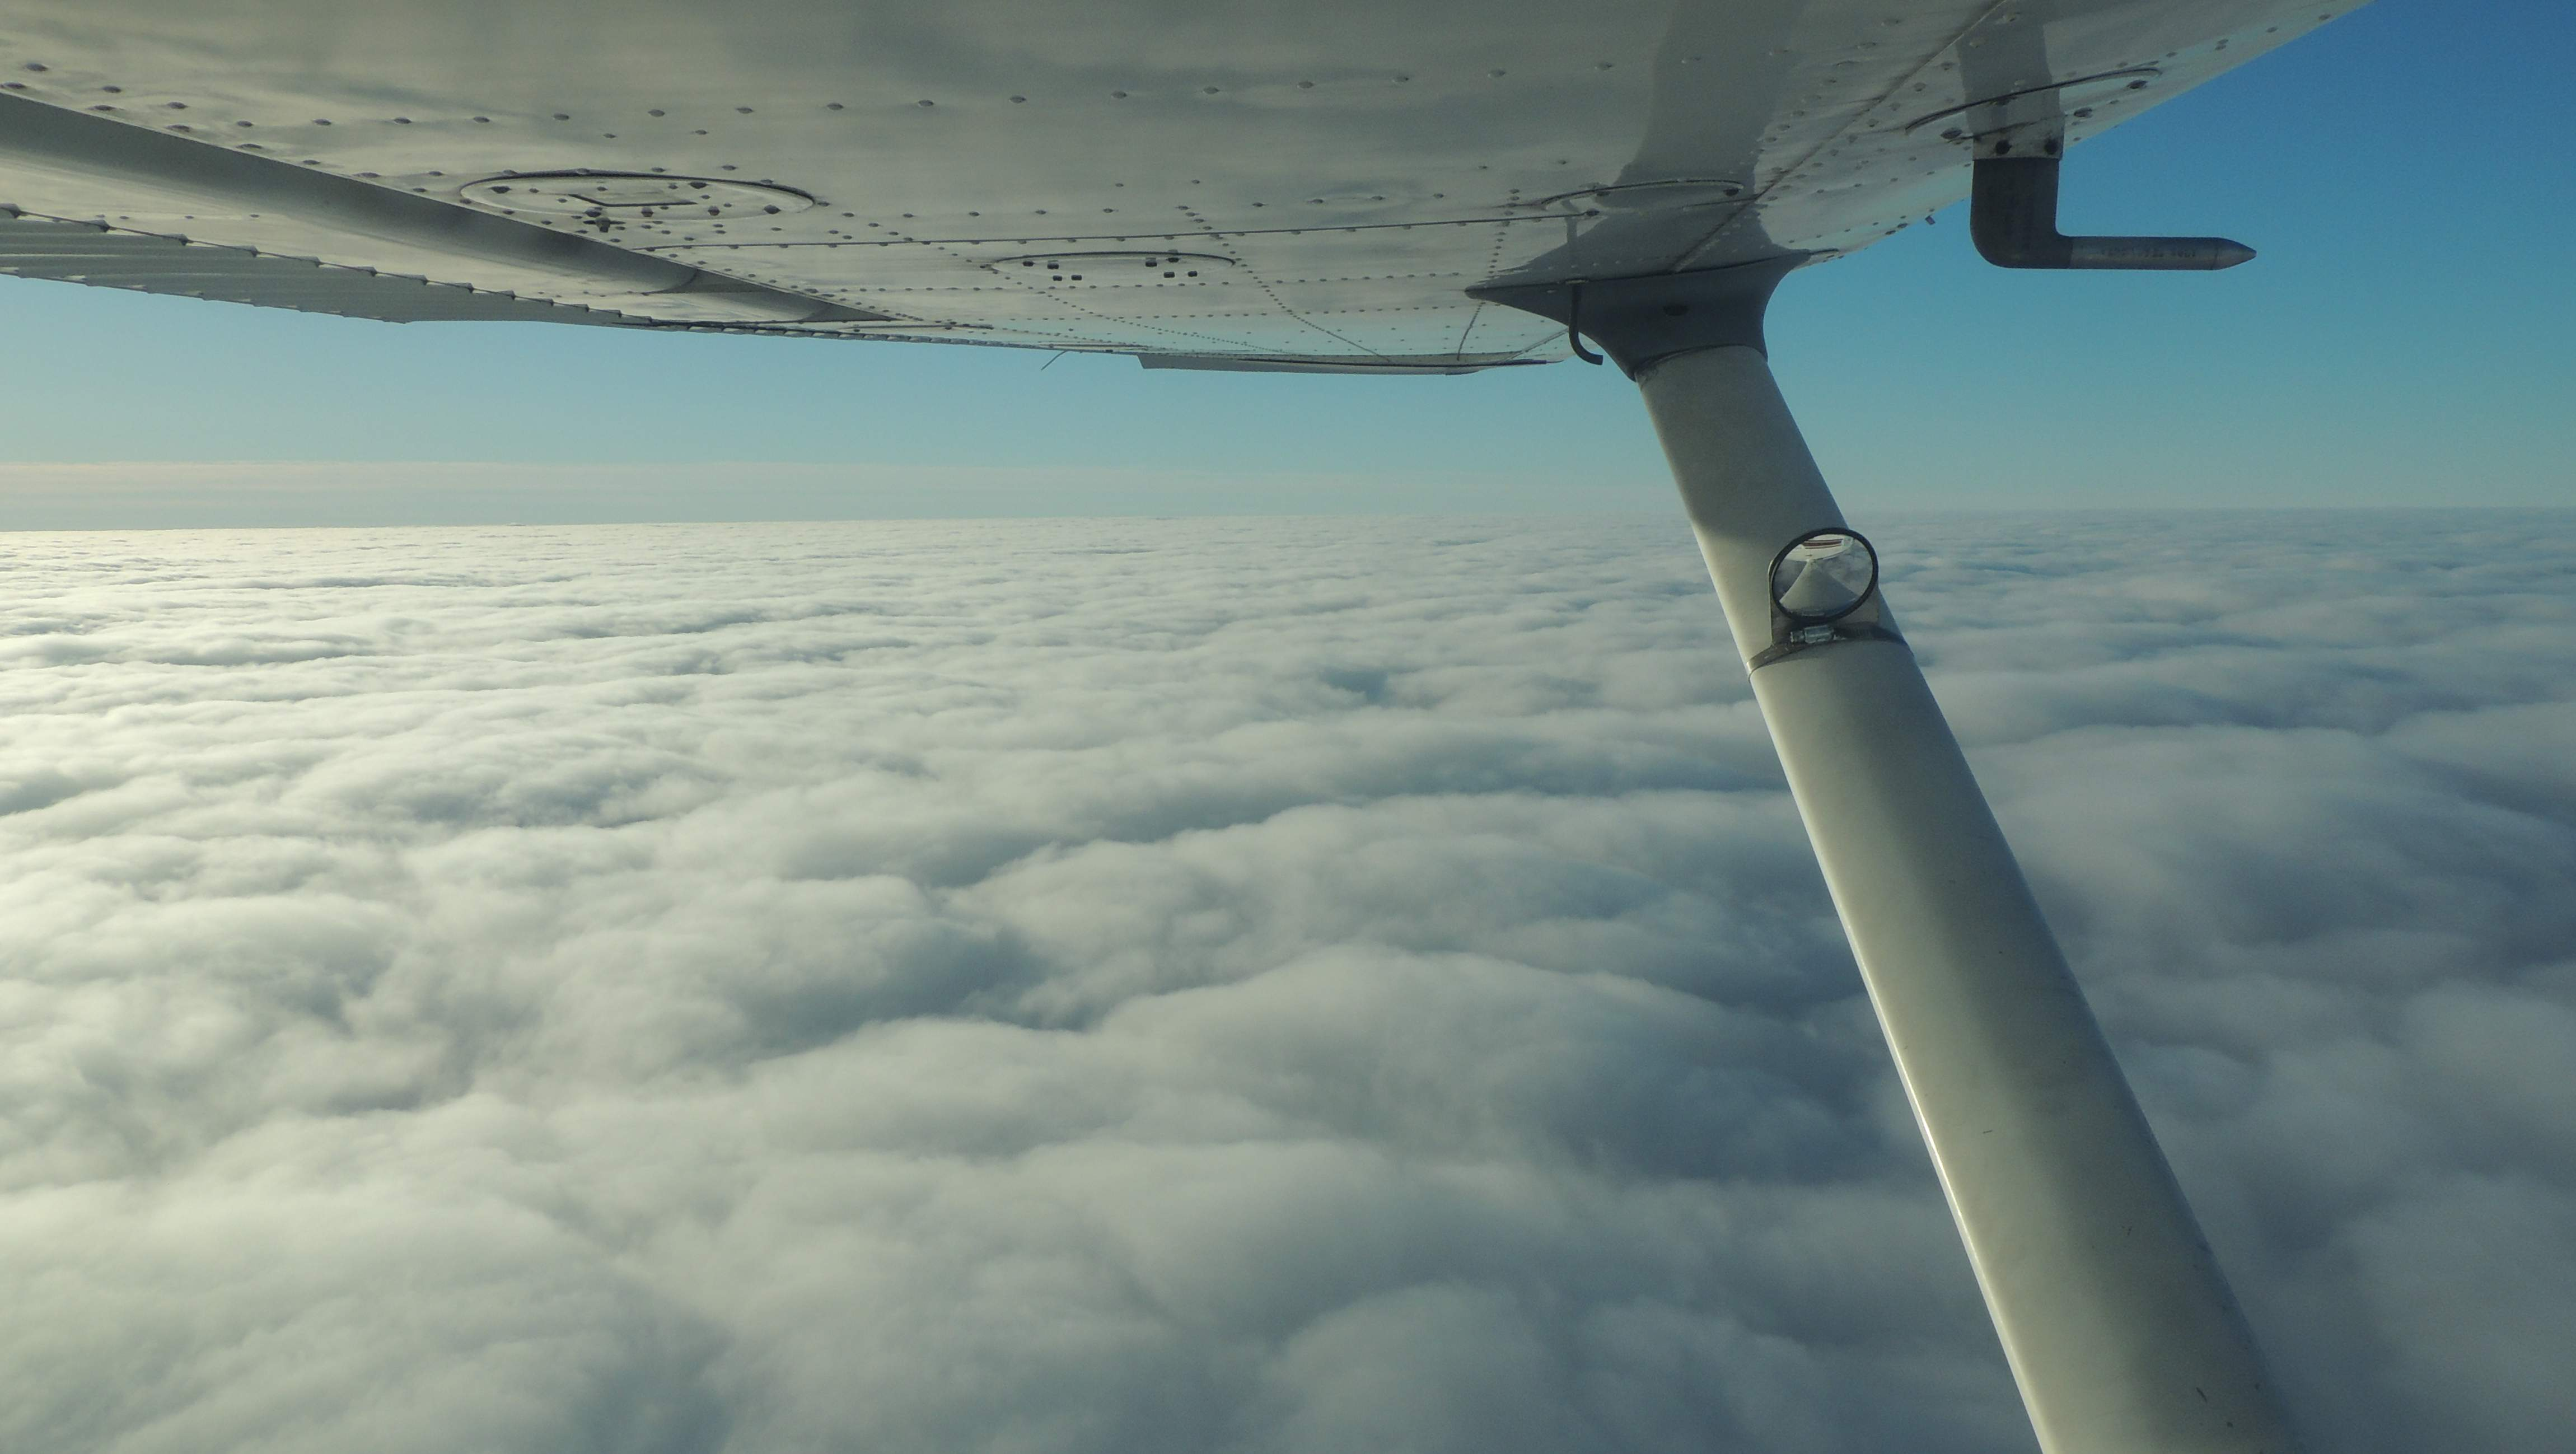 7000 feet and above the clouds over West Virginia    (It is snowing down below)